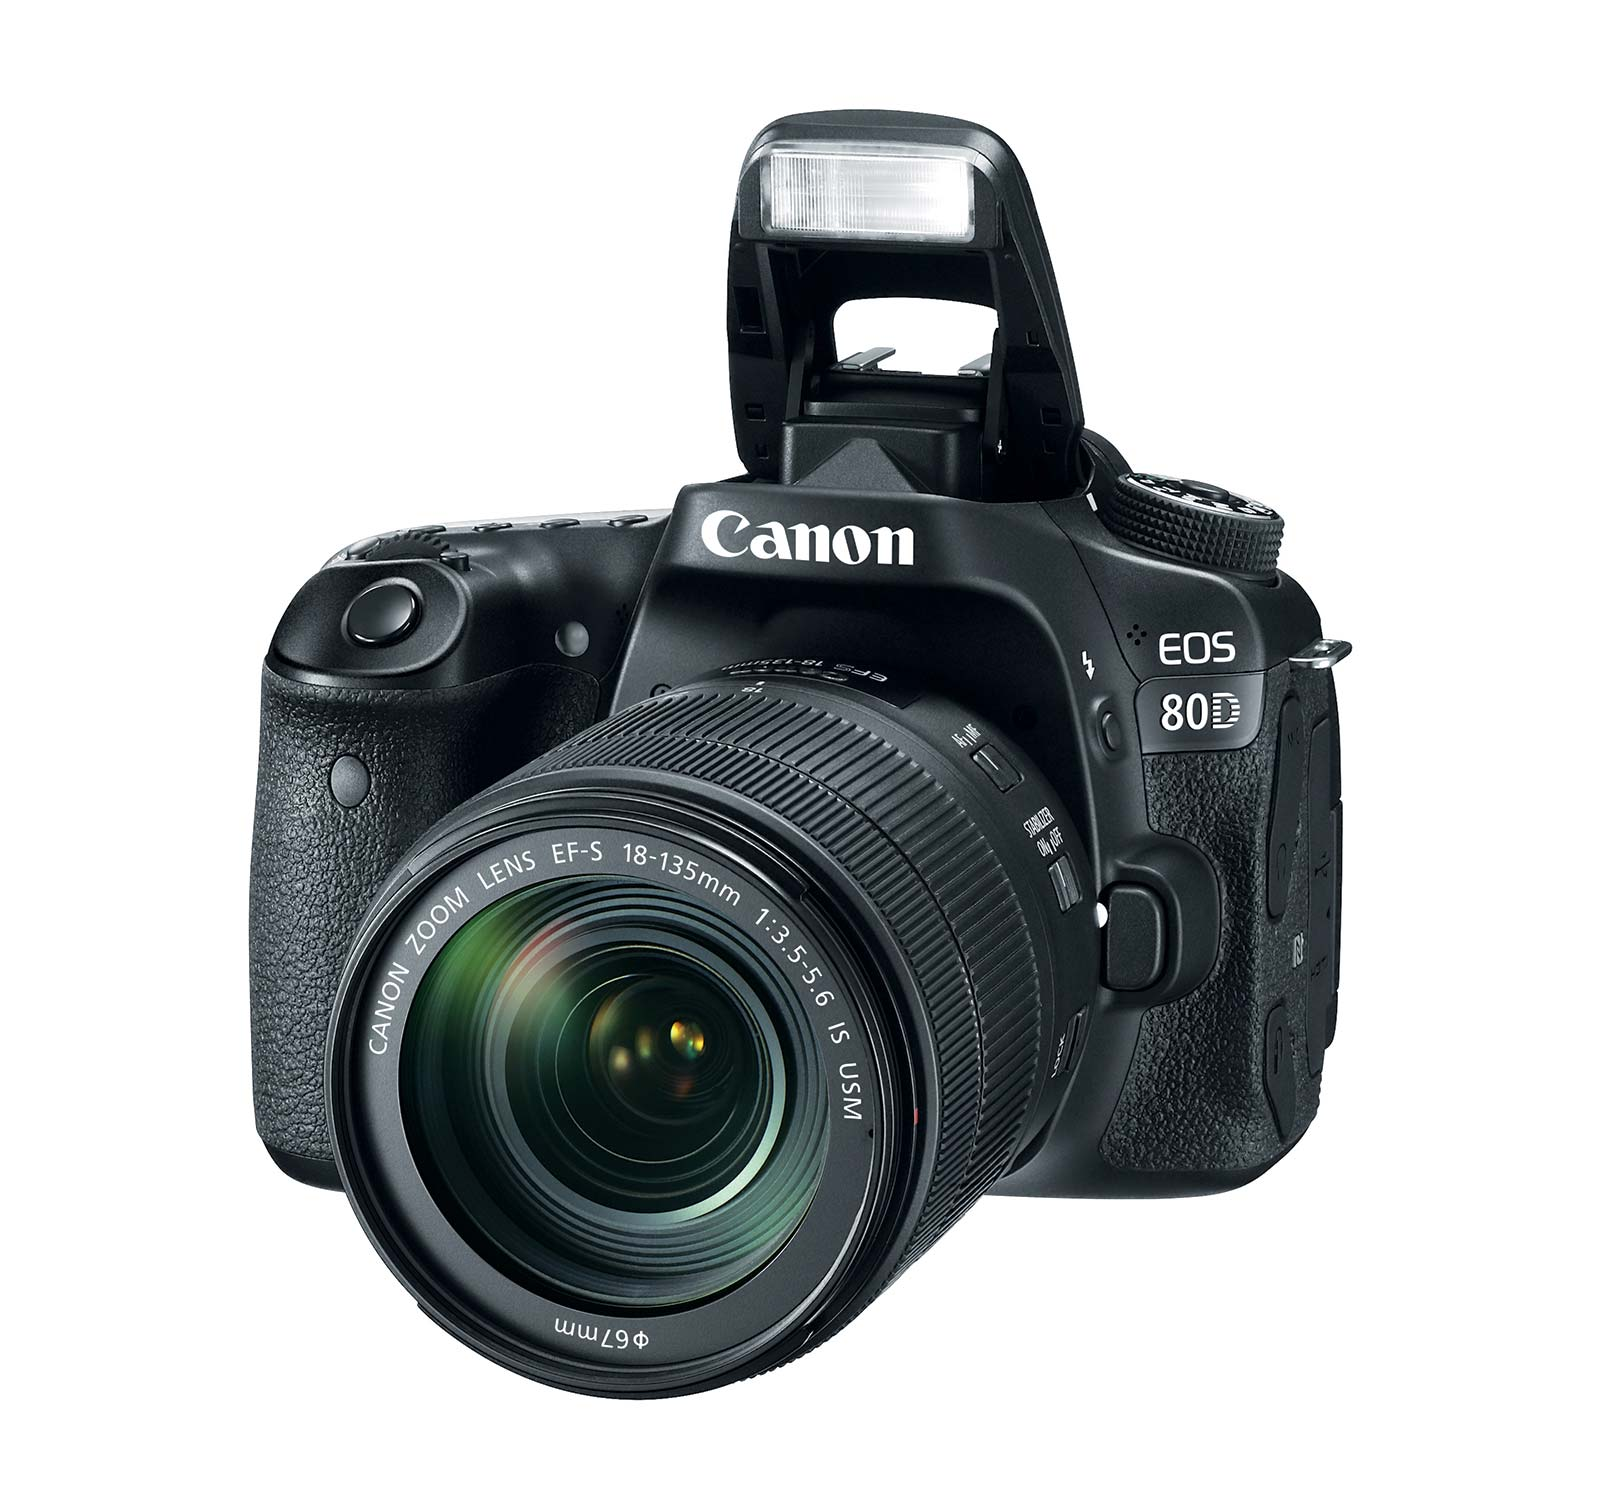 Canon Black EOS 80D Digital SLR Camera with 24.2 Megapixe...